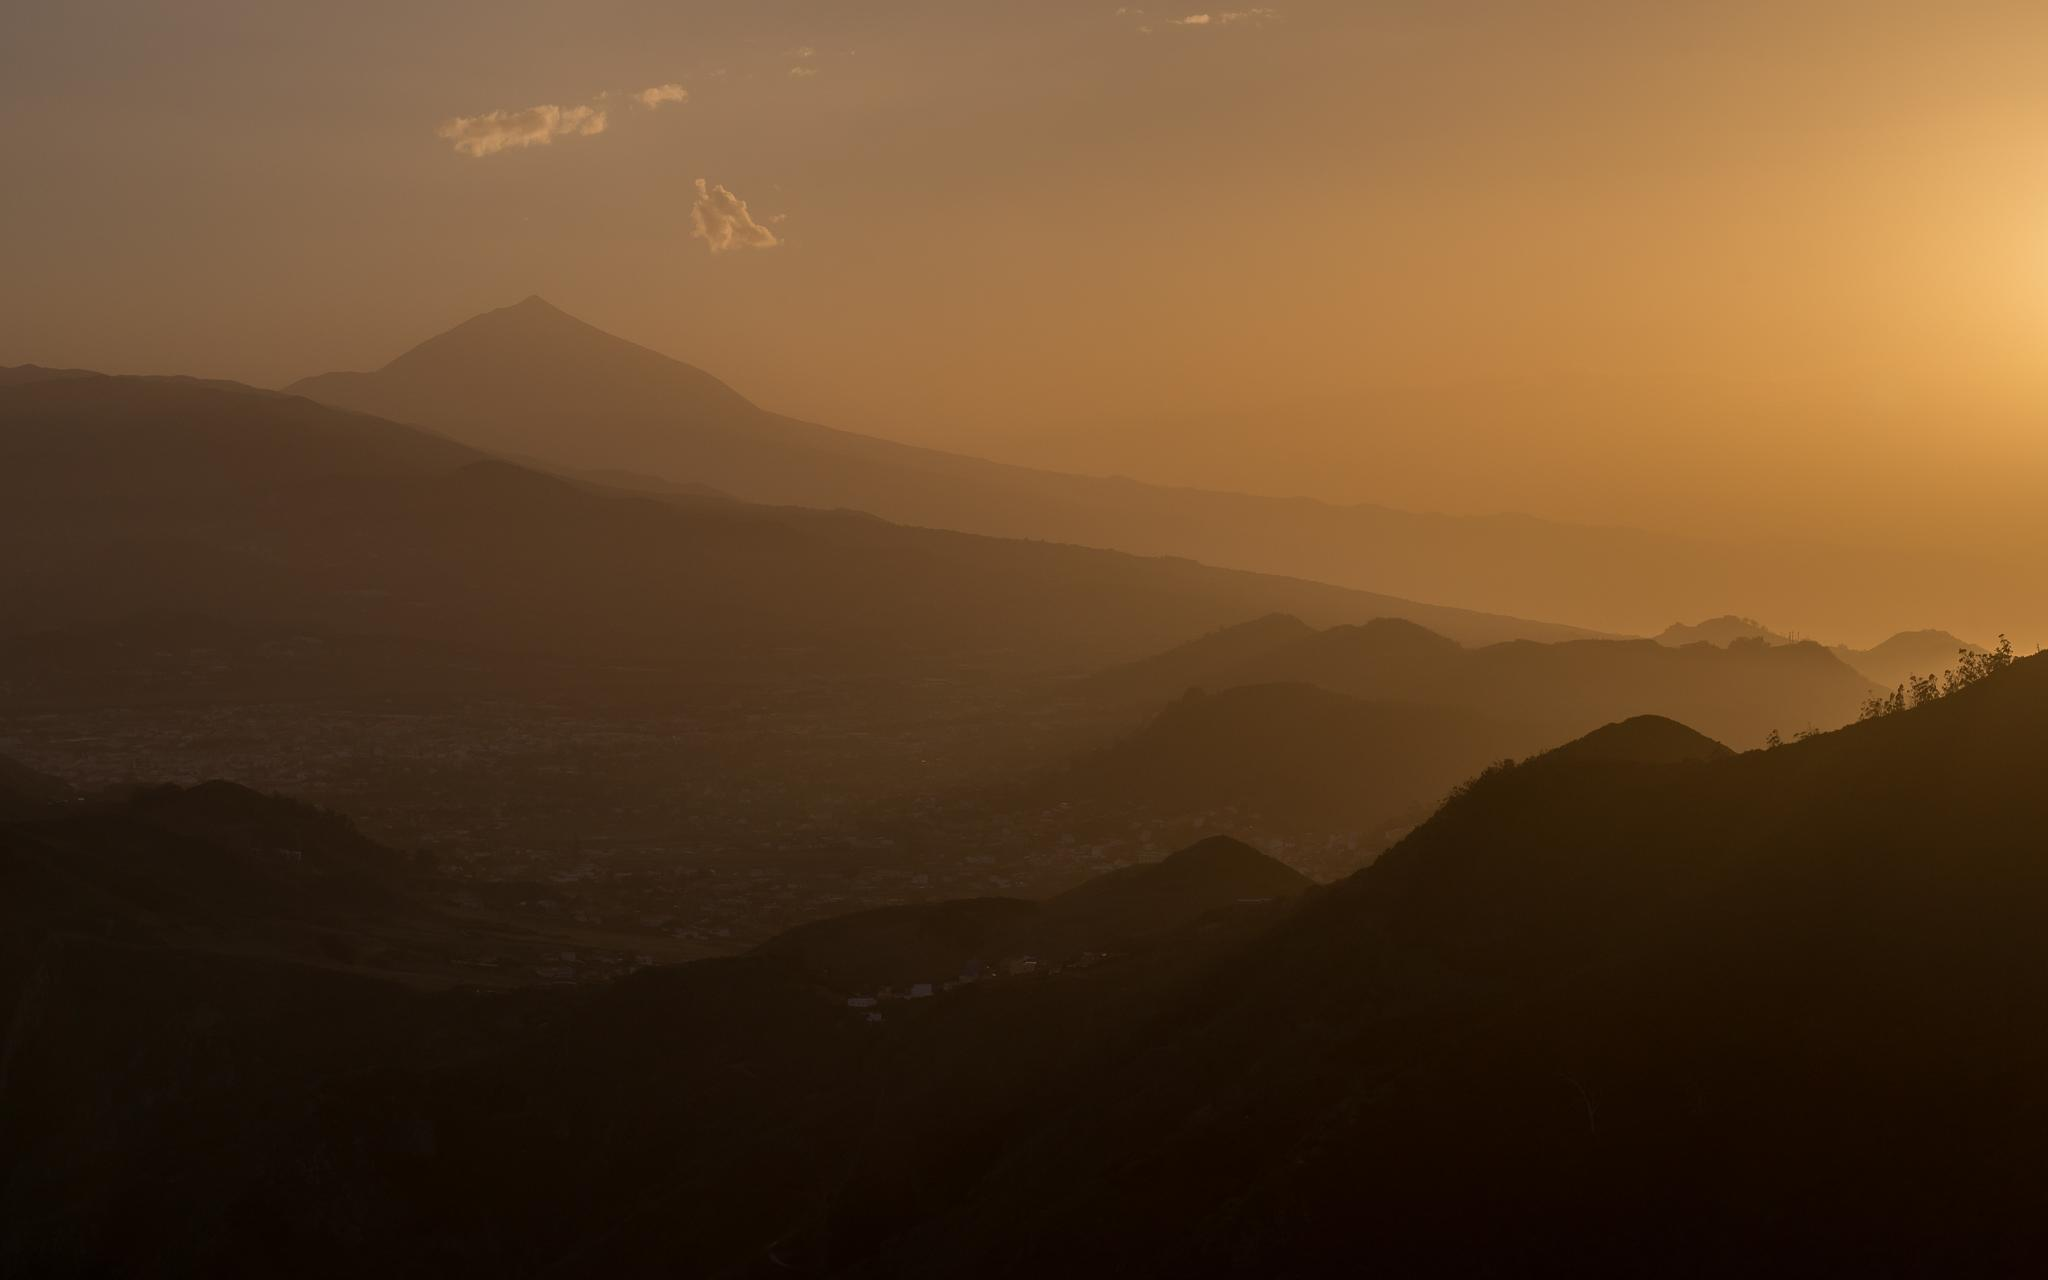 Tenerife sunset by Martynas Slapsys